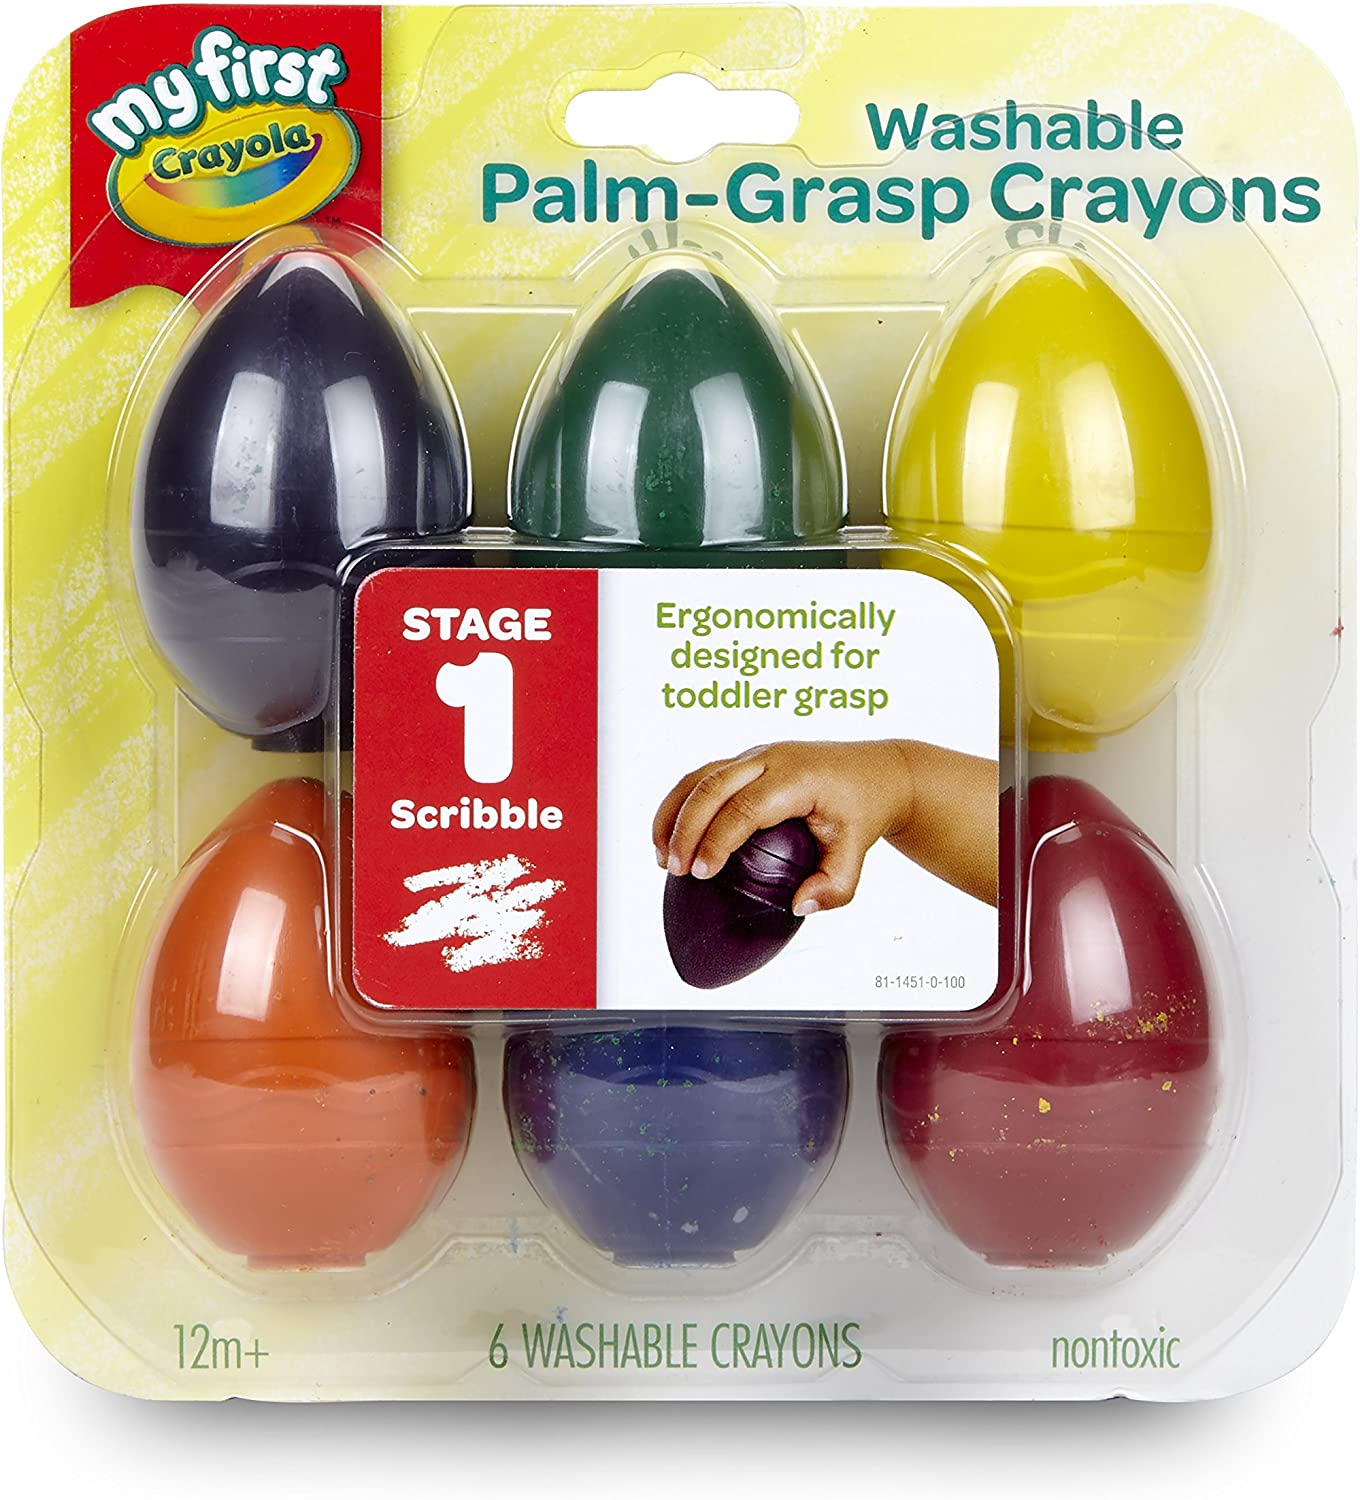 3 Count Crayola My First Palm Grip Crayons for Toddlers FAST /& FREE SHIPPING